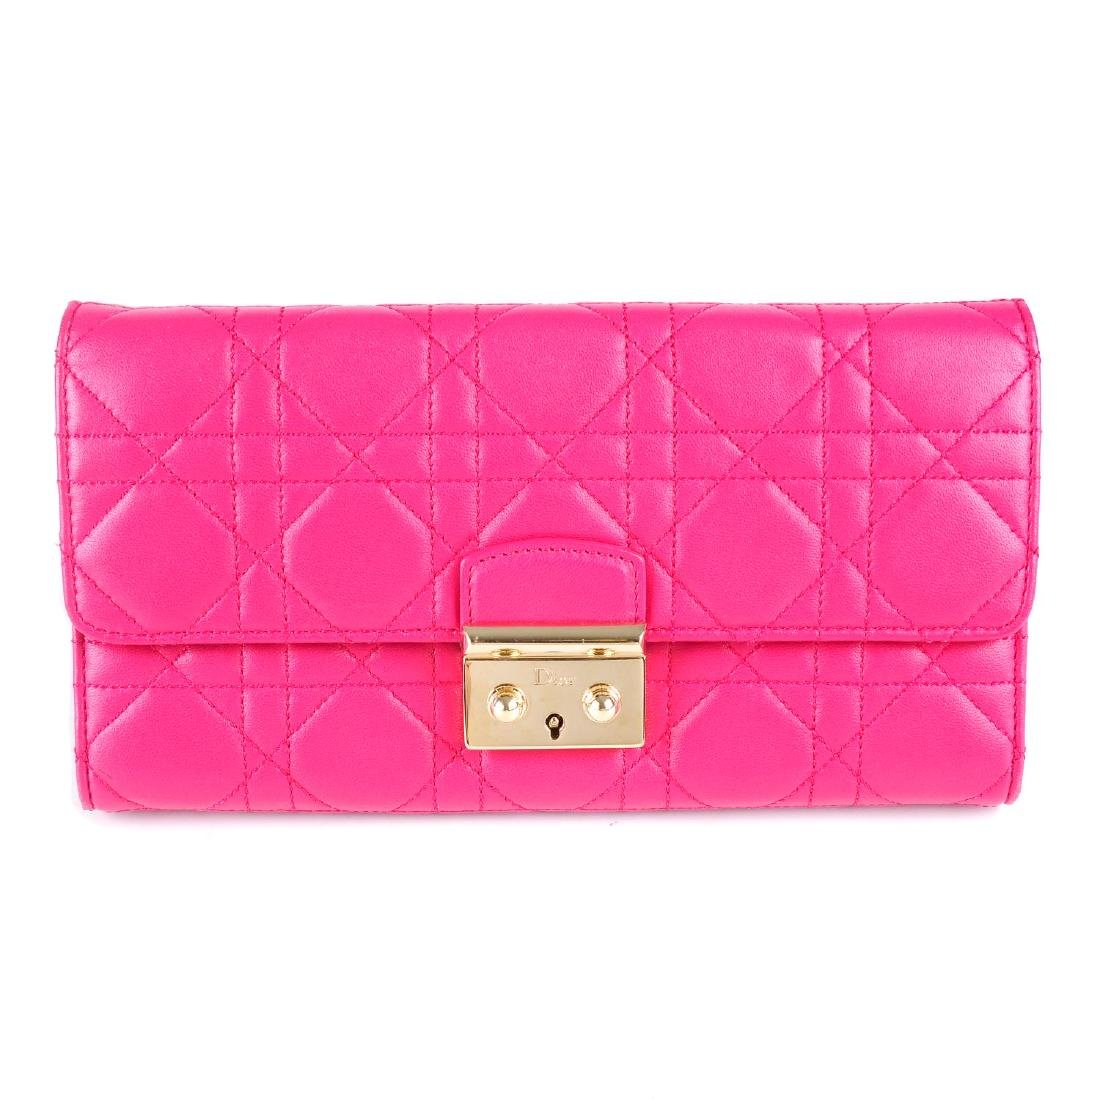 CHRISTIAN DIOR - a Cannage Miss Dior Wallet On Chain